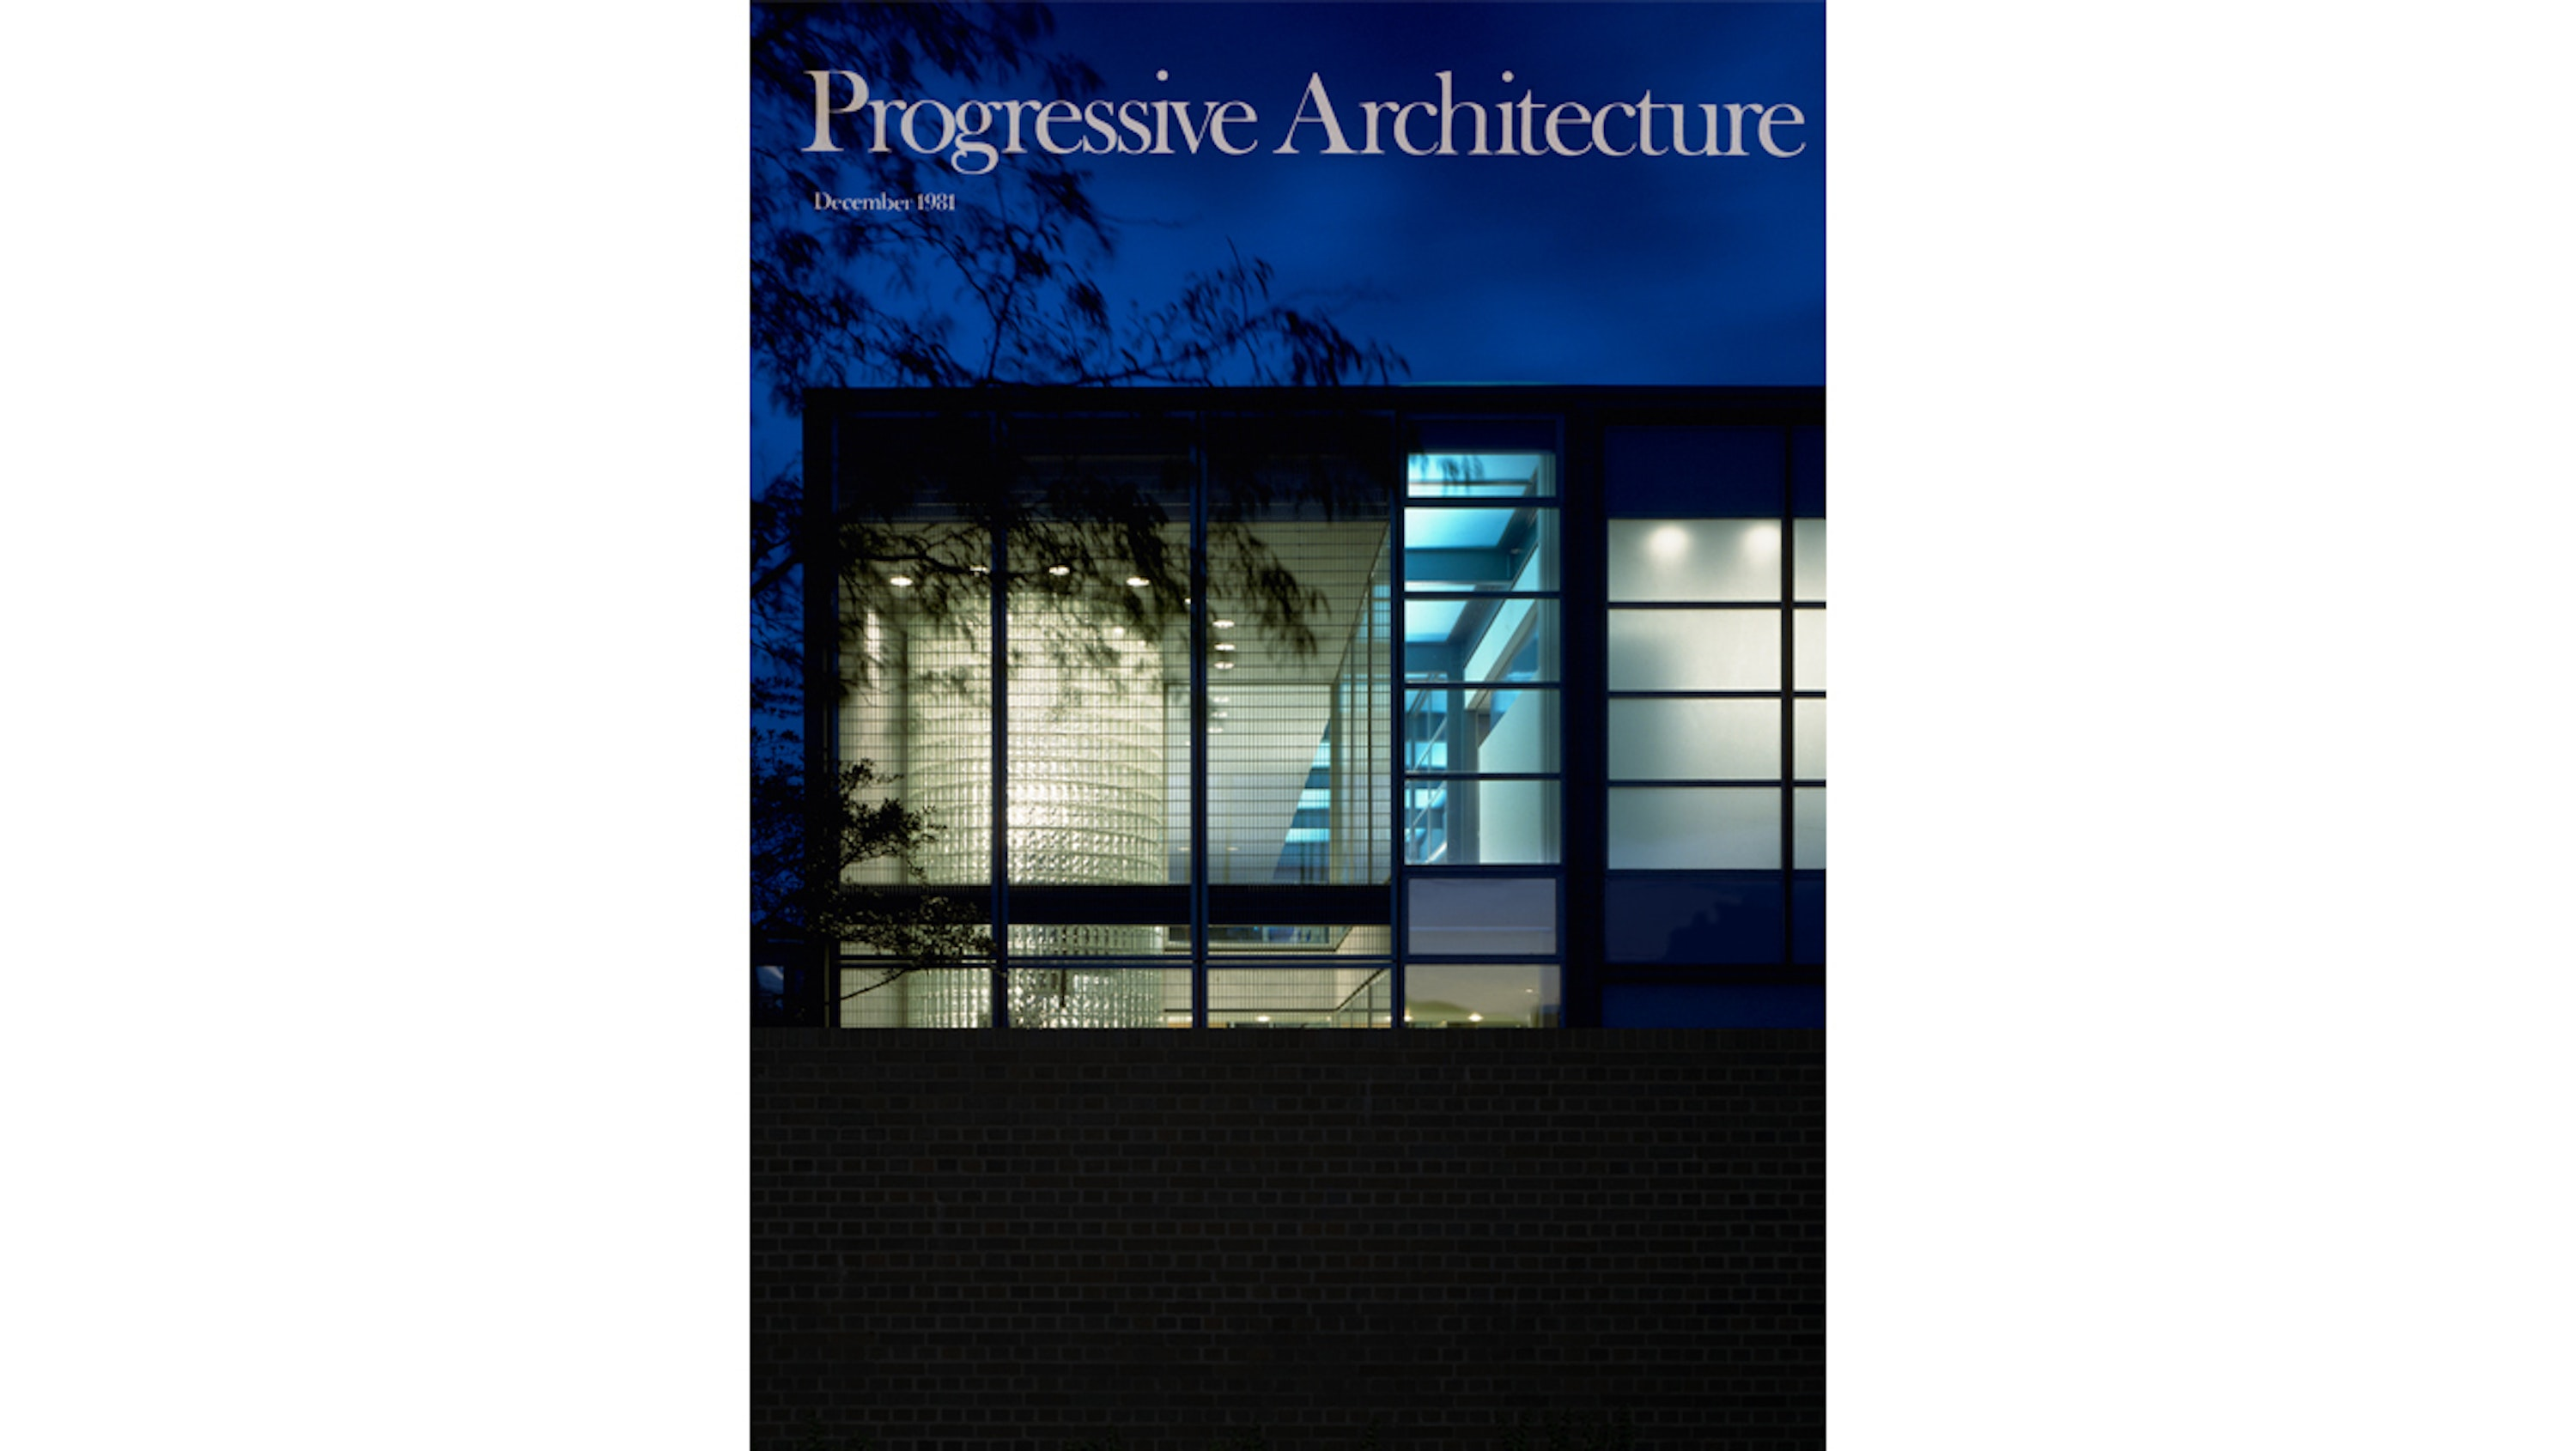 Progressive Architecture: A Steel & Glass House Thumbnail